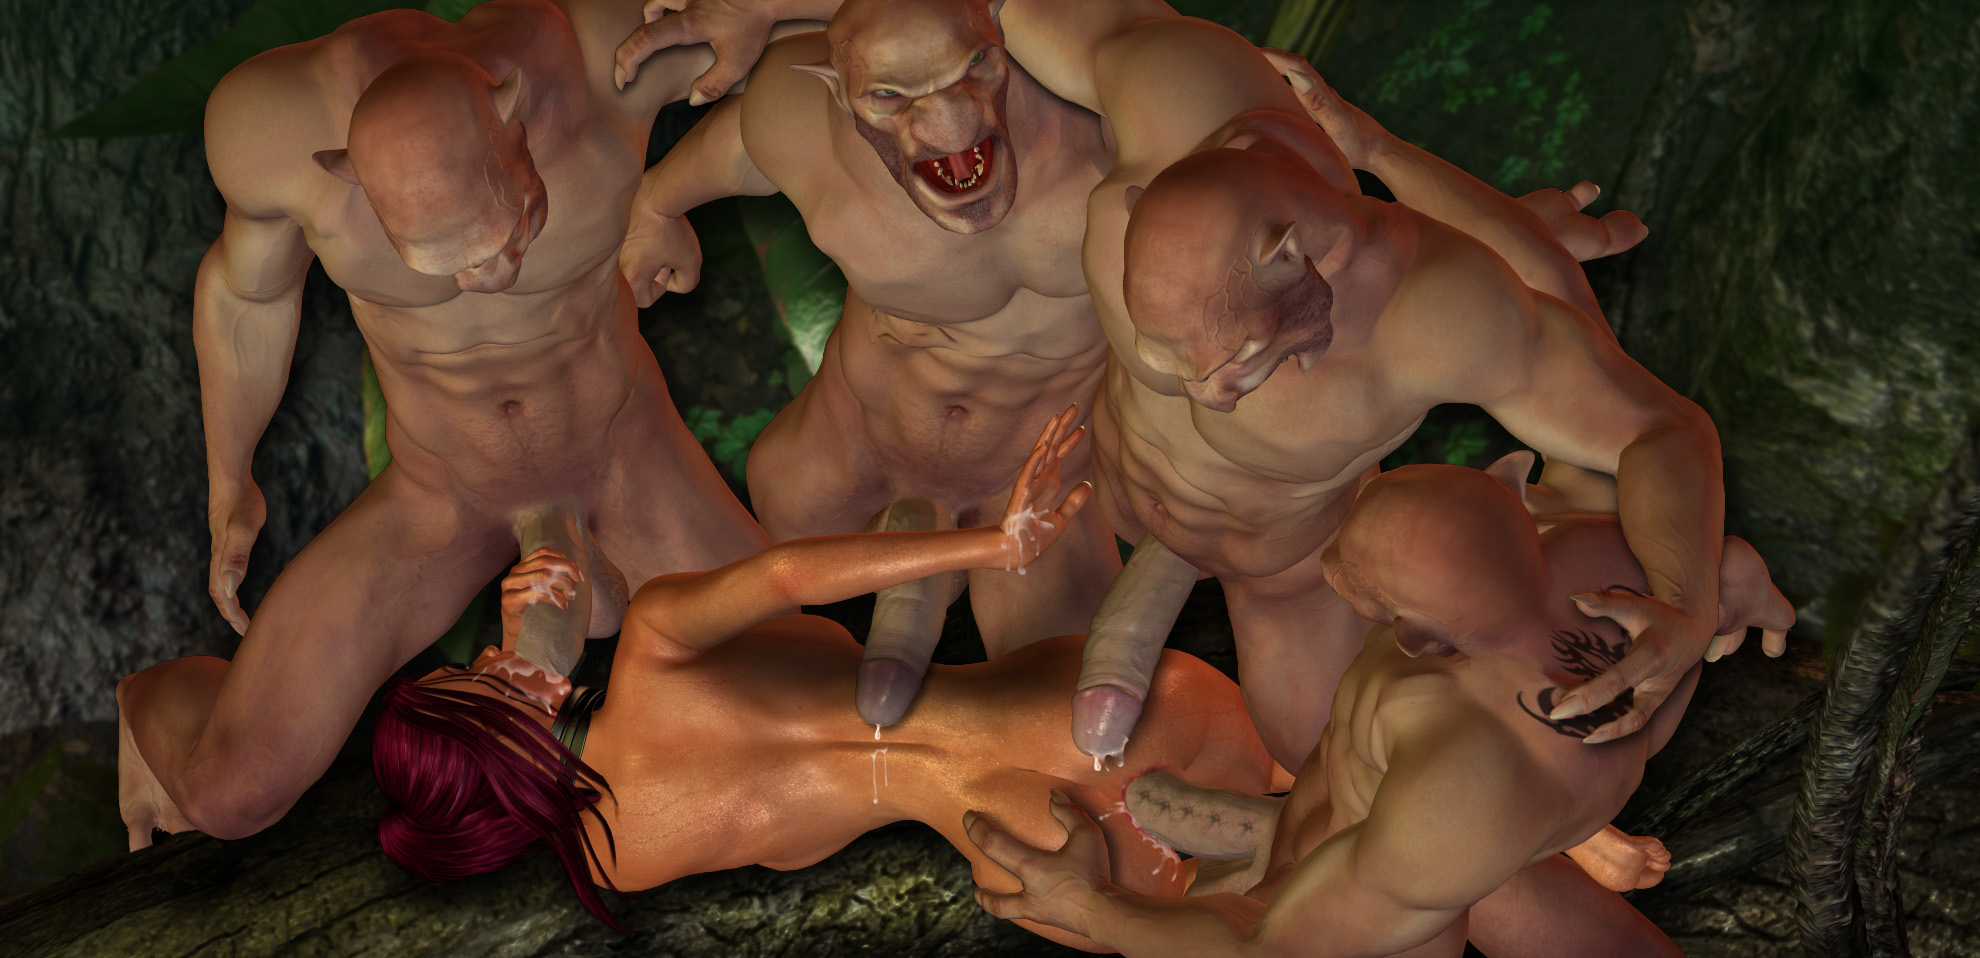 Fantasy erotic monster art sex tube porn scenes